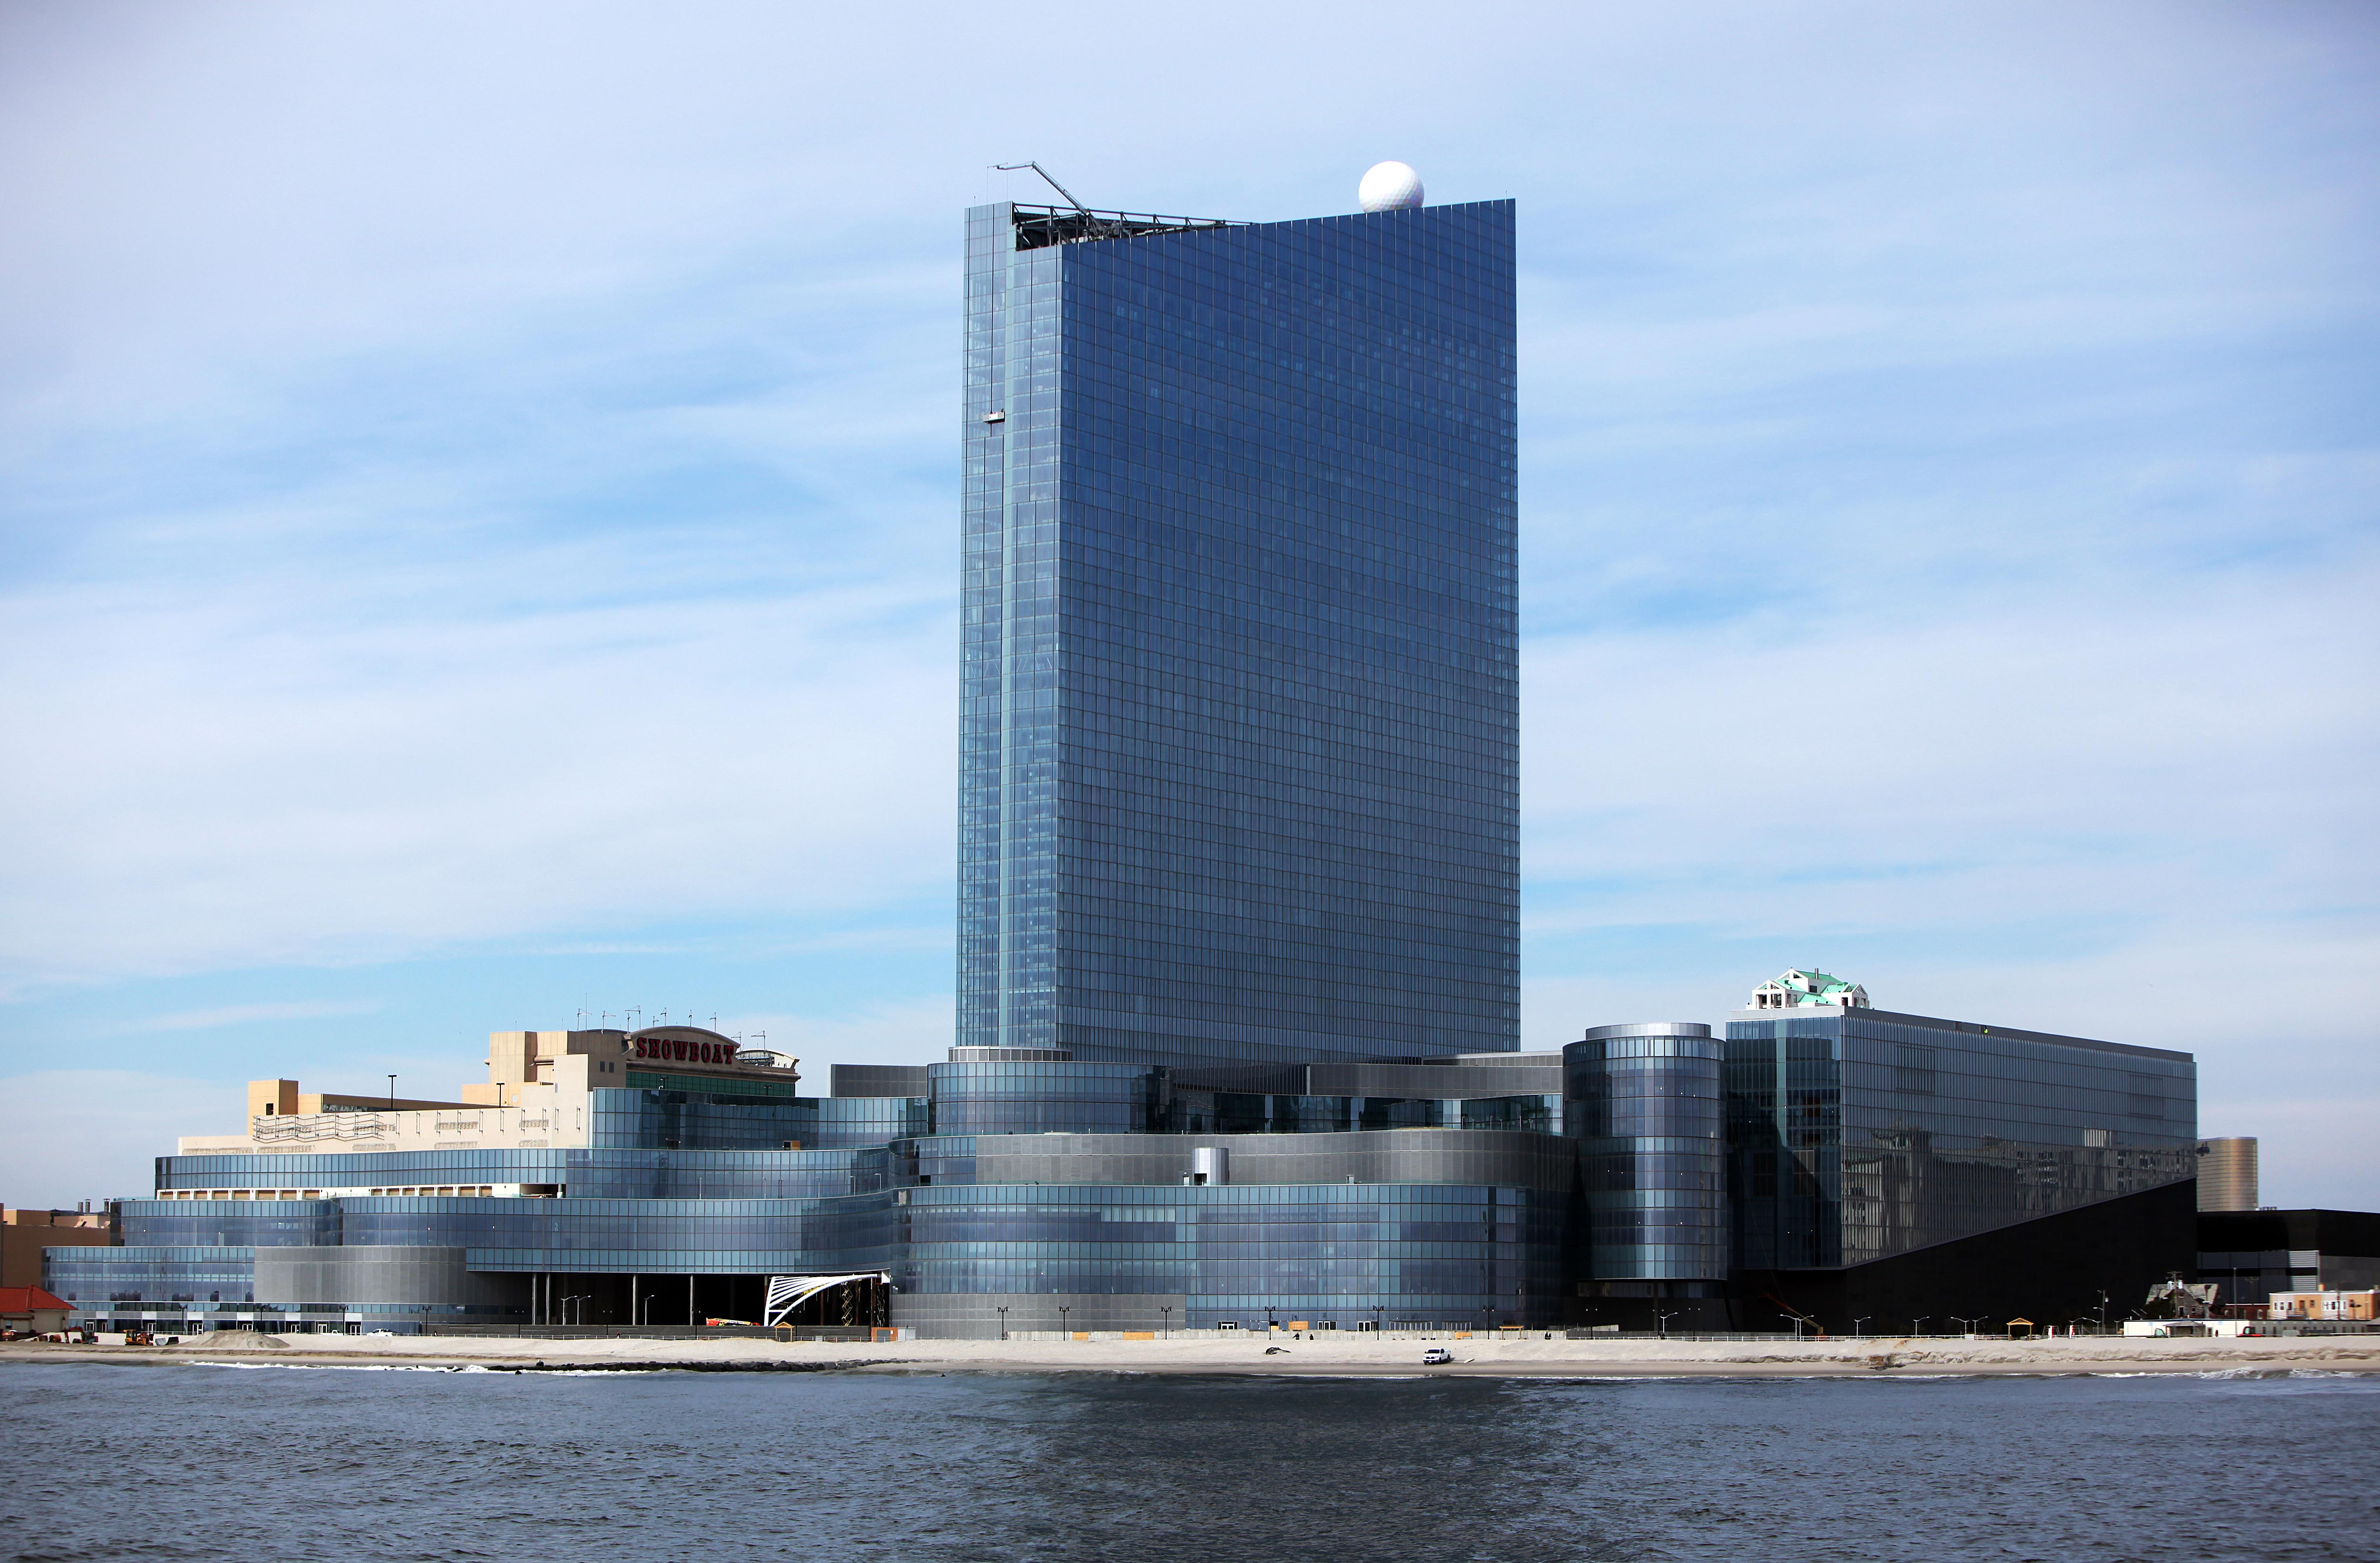 The Revel Atlantic City